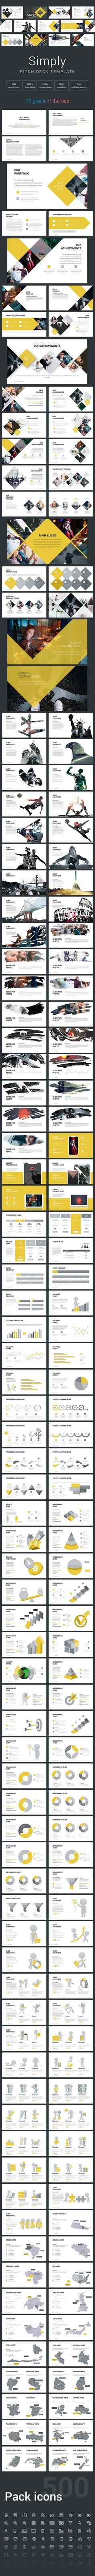 Simply Pitch Deck Keynote Template